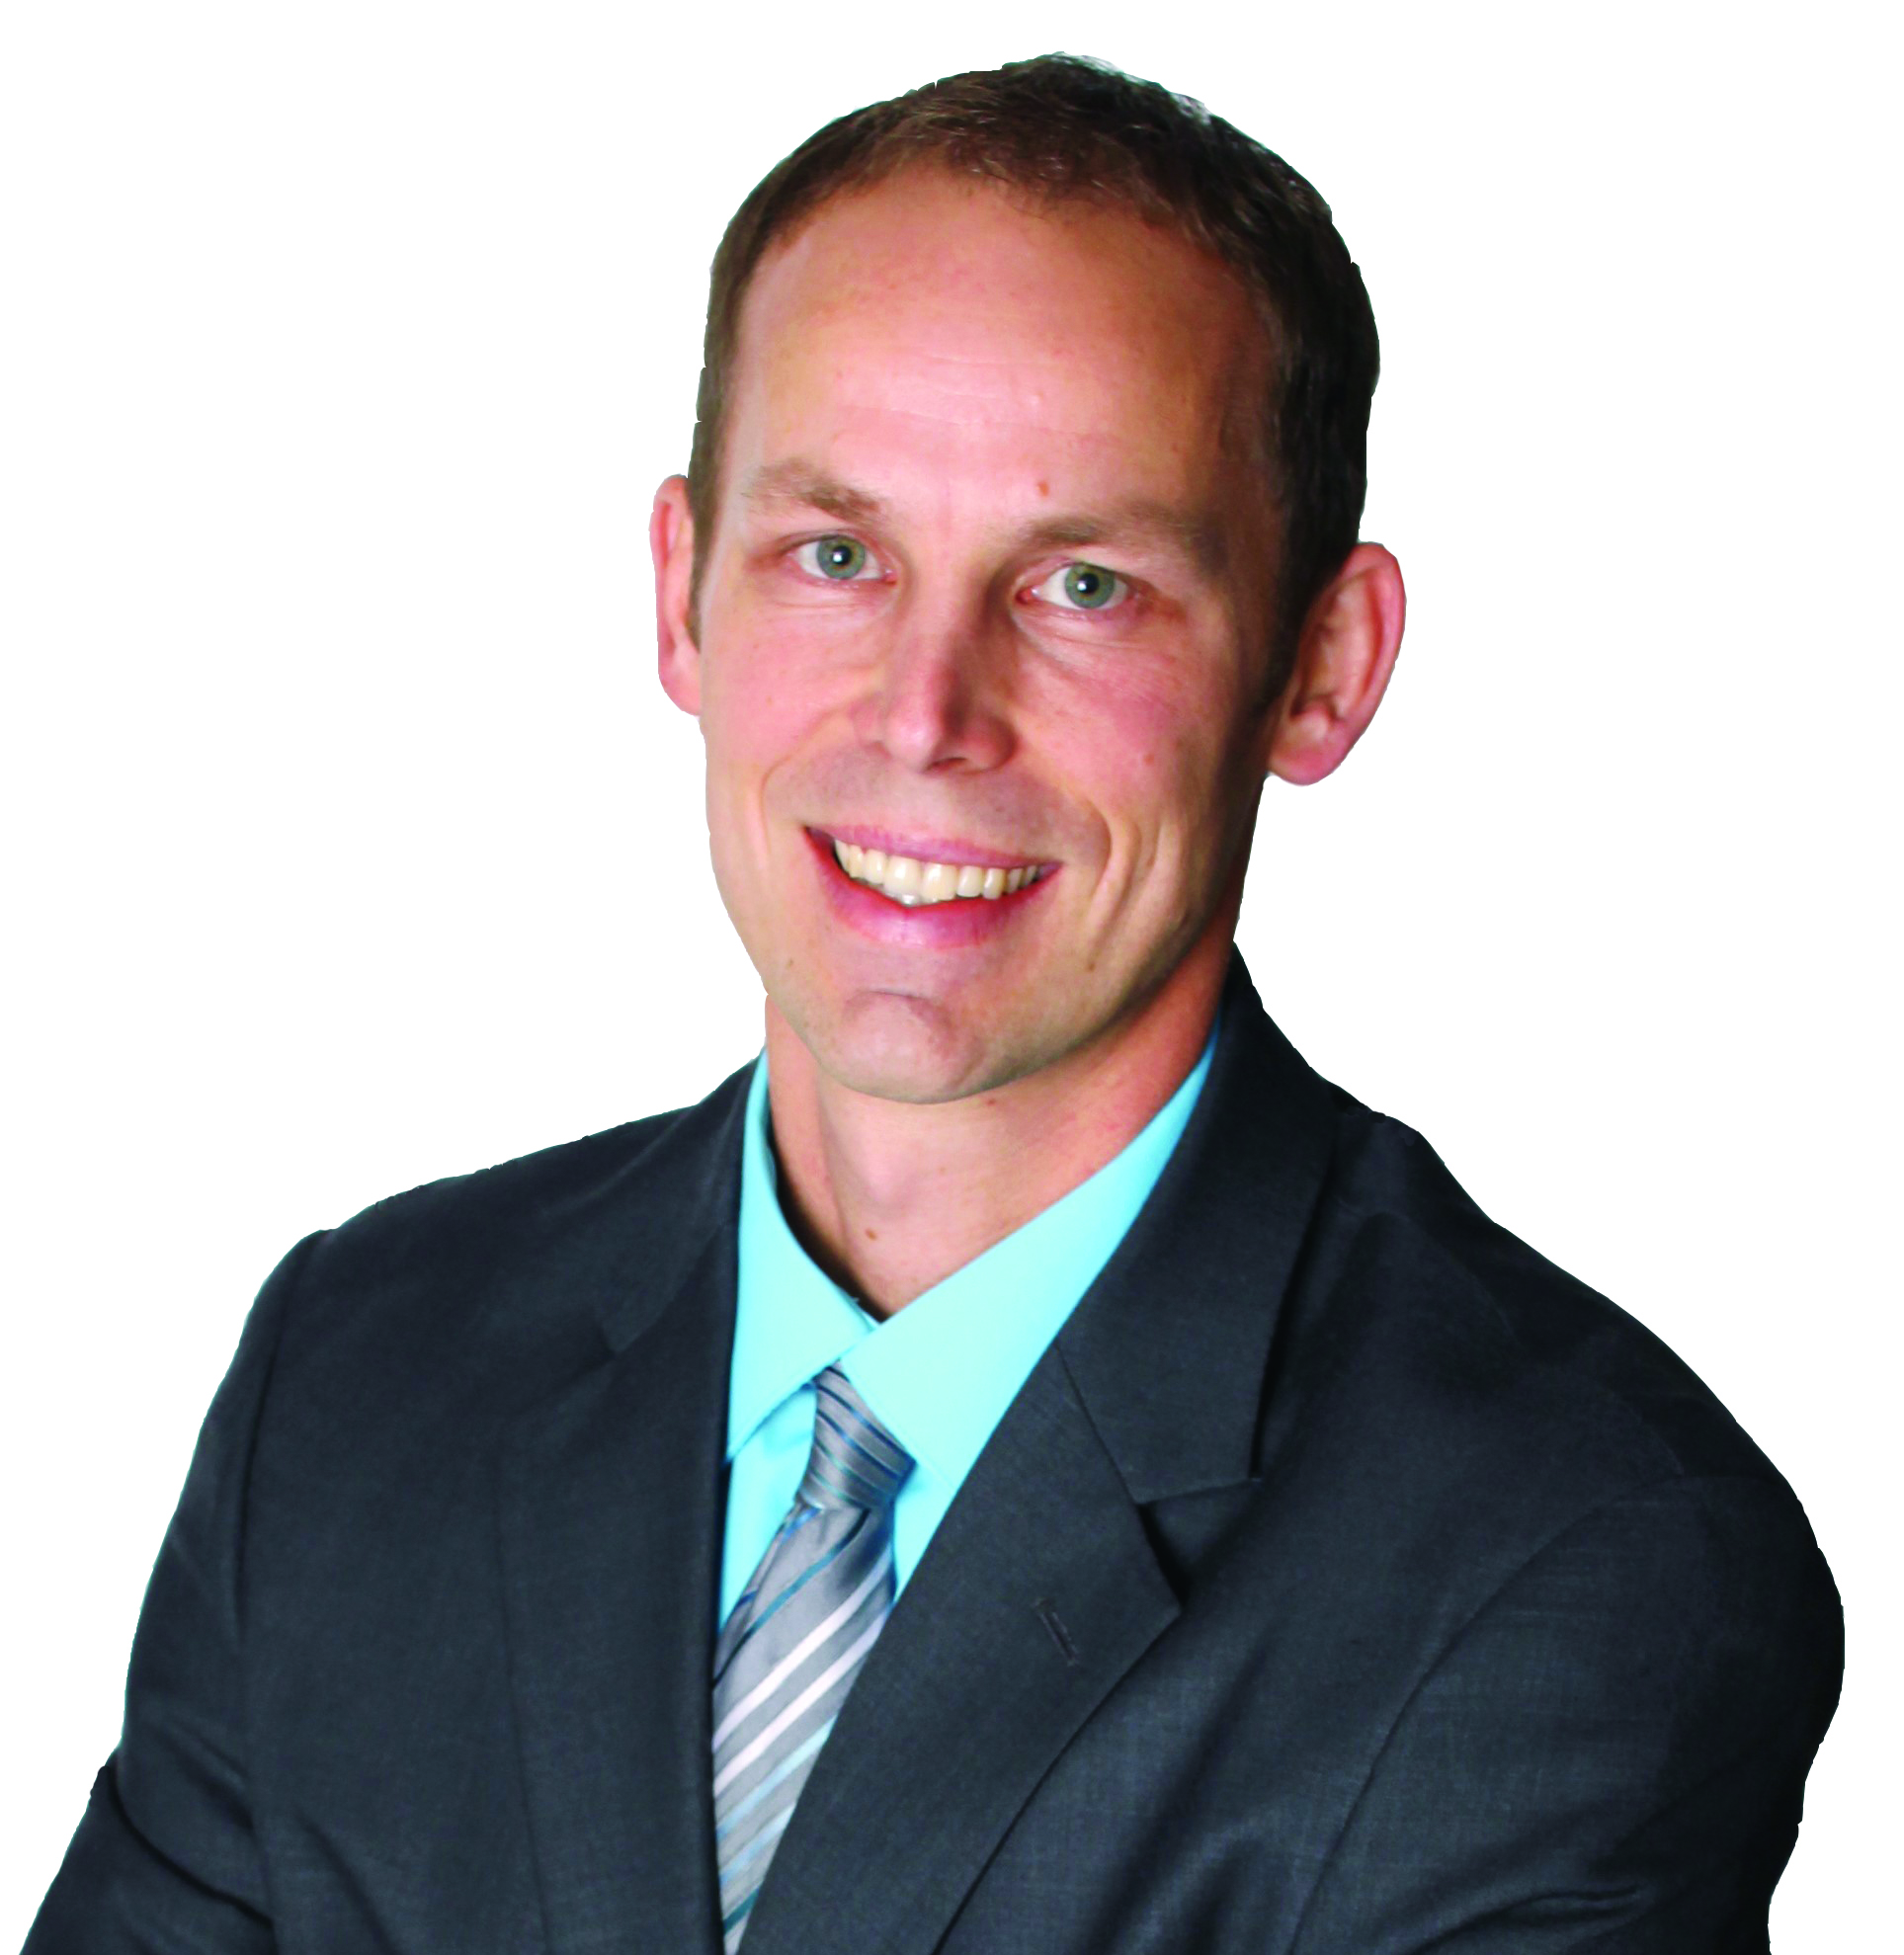 Paul Hoogendoorn, financial advisor Sioux Center IA